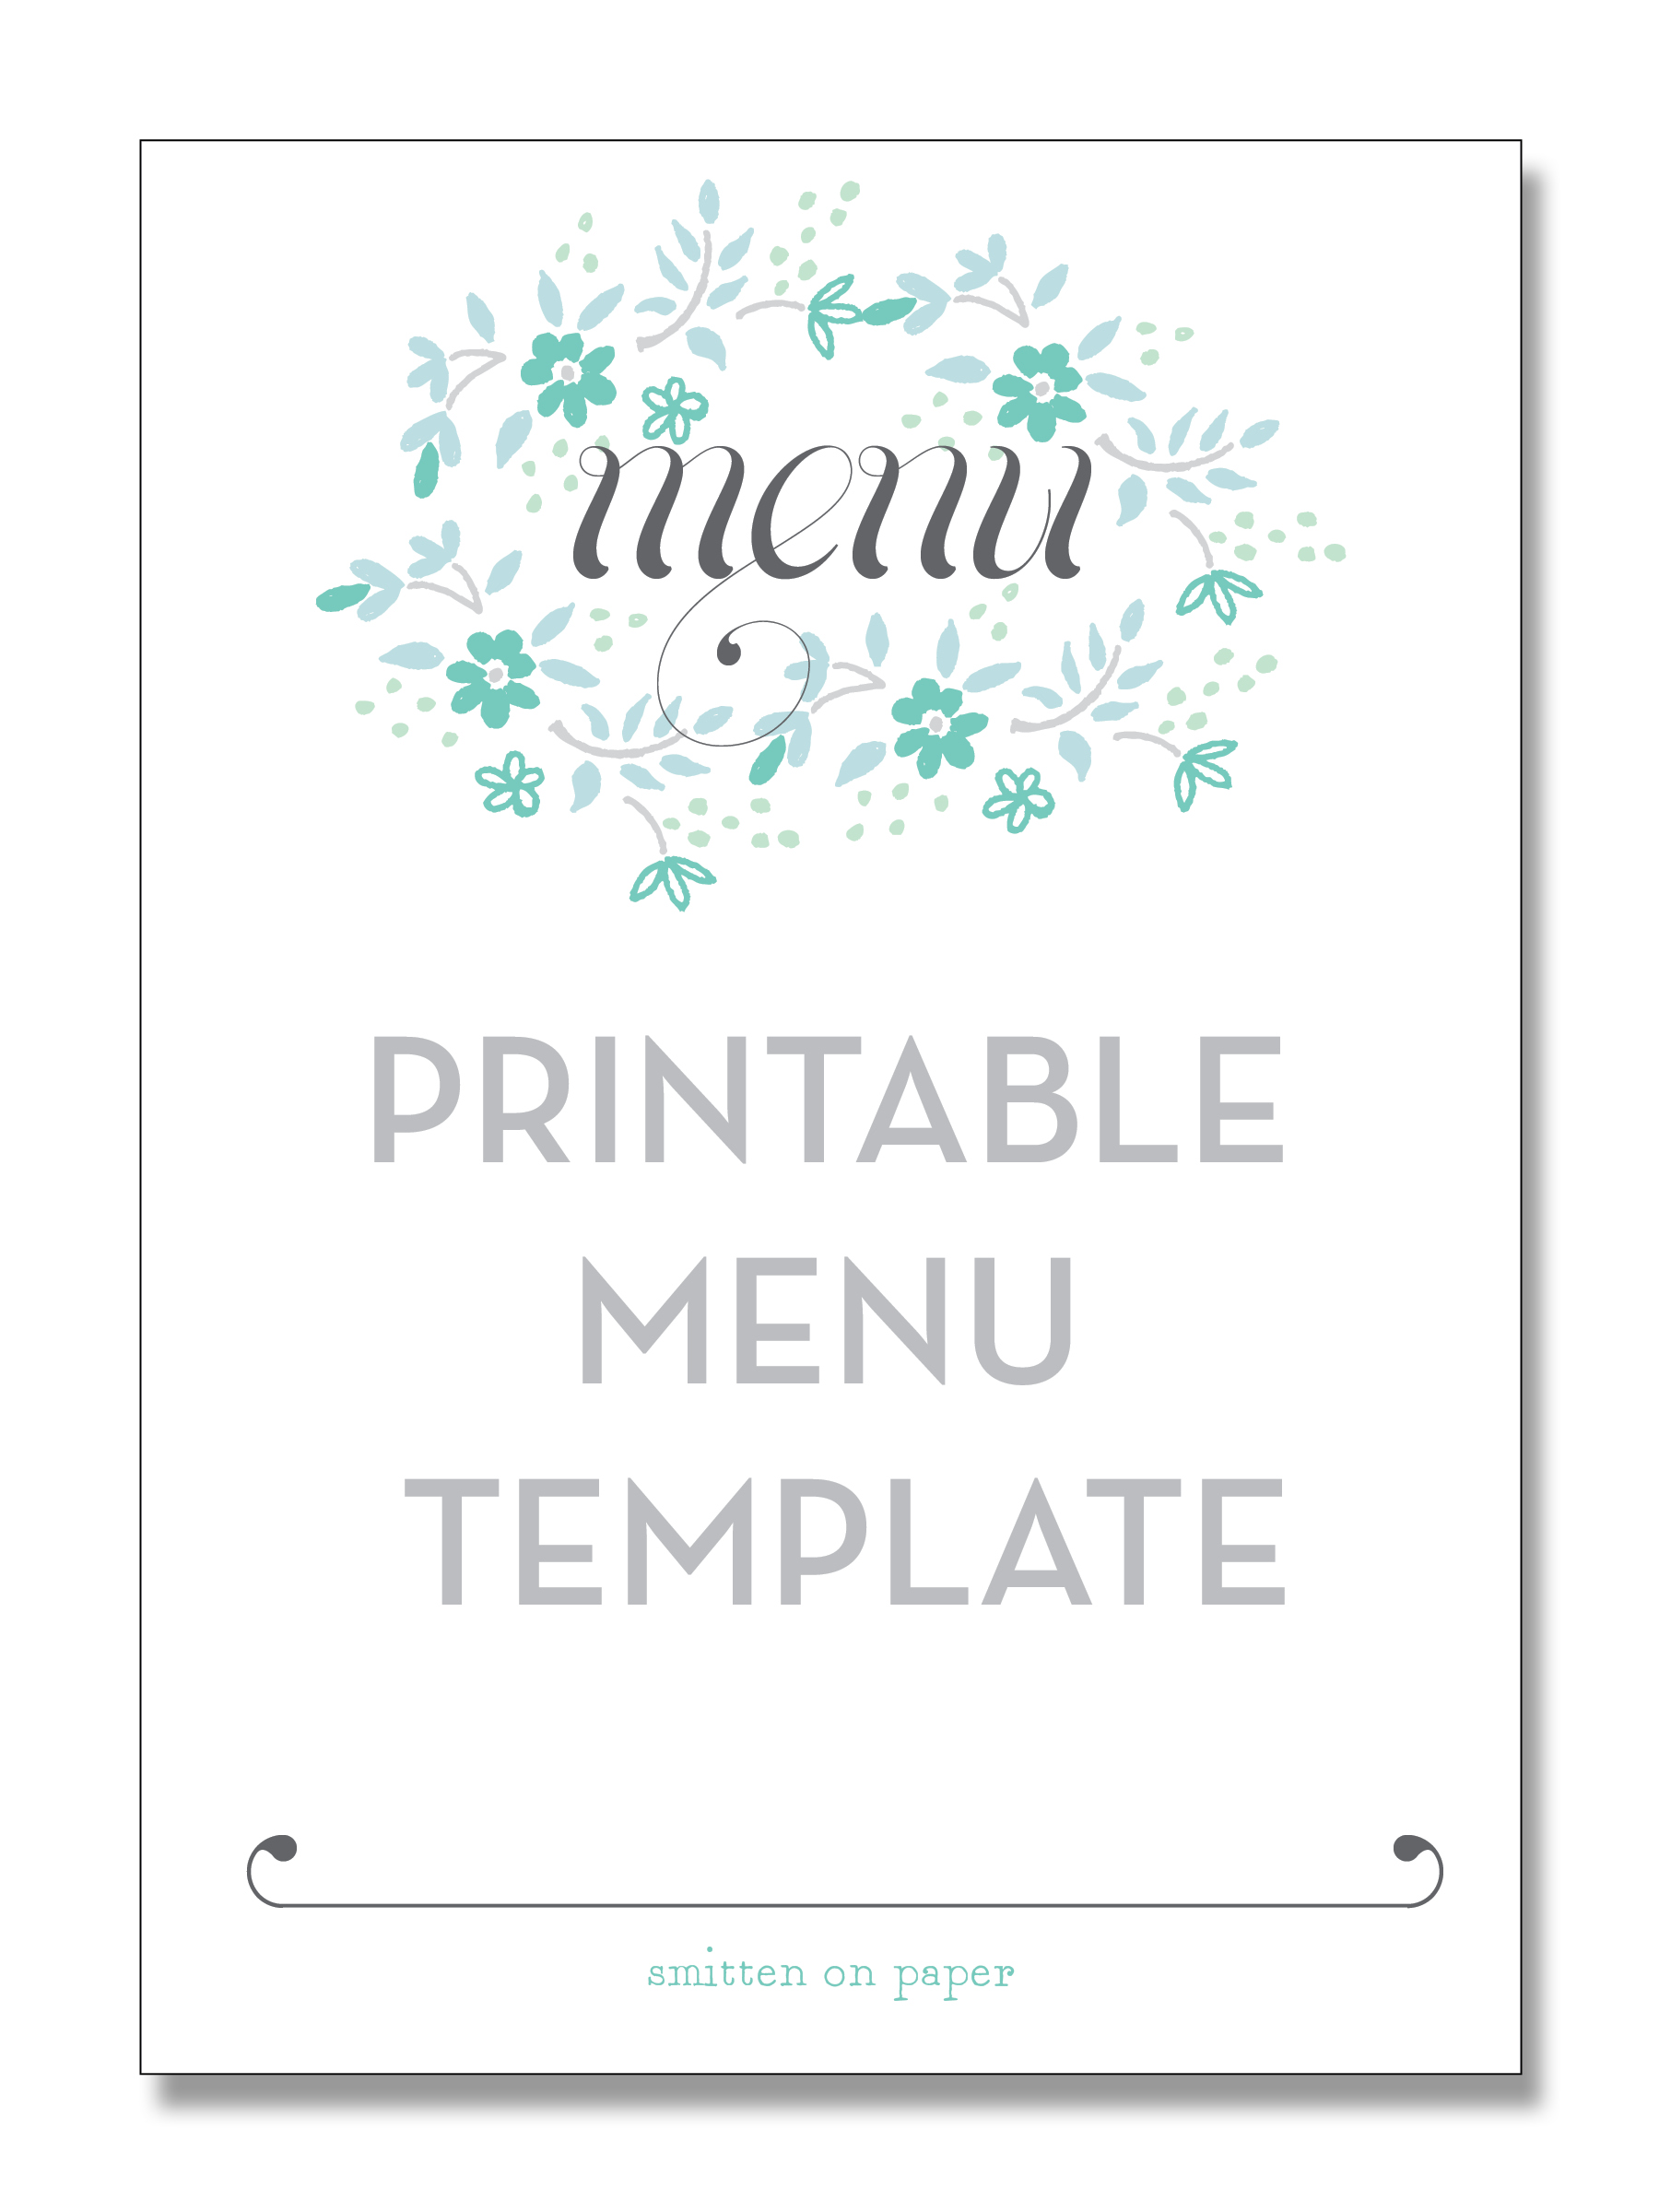 4 Images of Free Printable Template Restaurant Menus